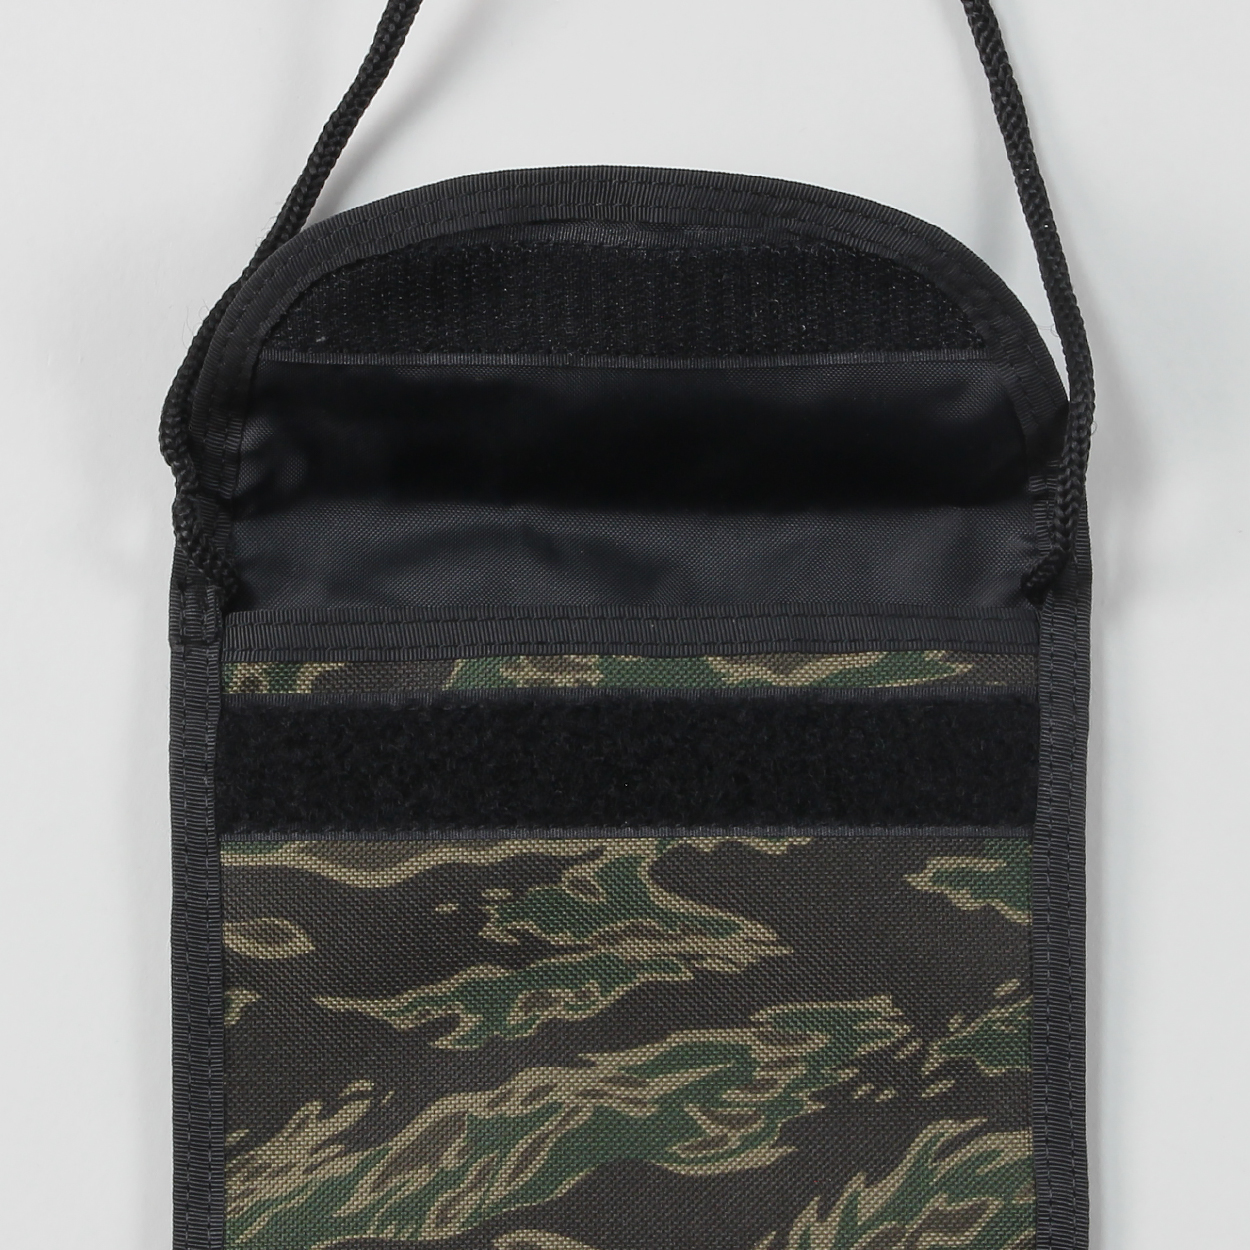 e3ea5e1f2c Just the right size to fit a phone, wallet keys and other bits in. Carhartt  WIP Collins Neck Pouch